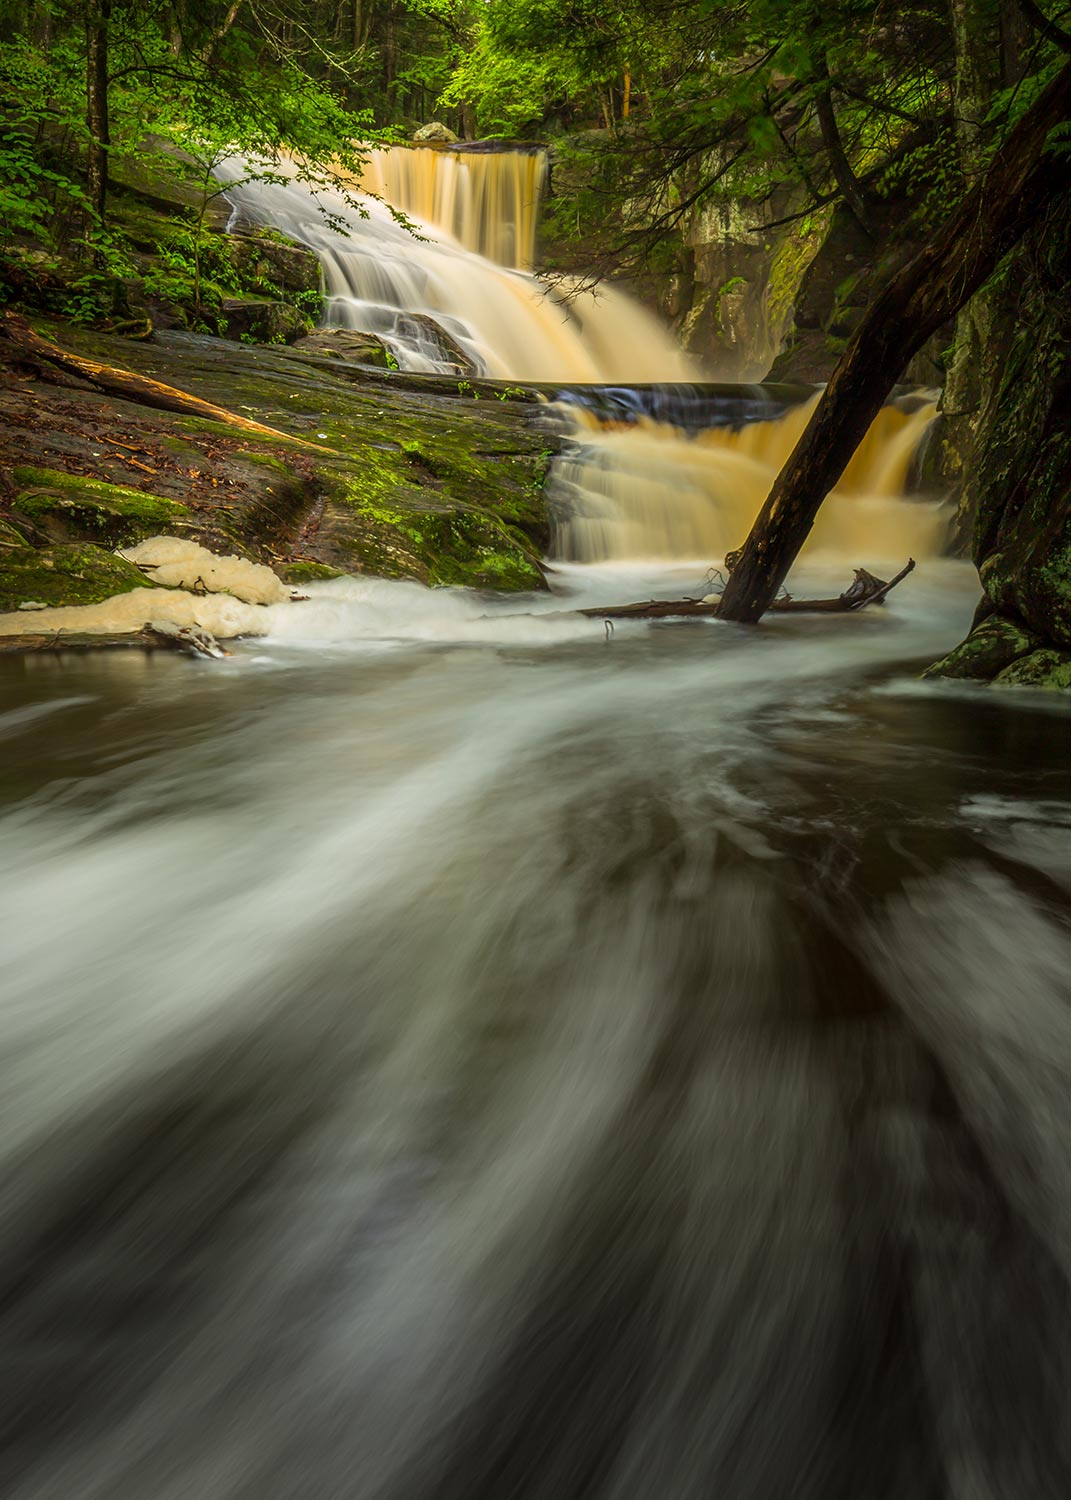 Down stream from Ender's Falls